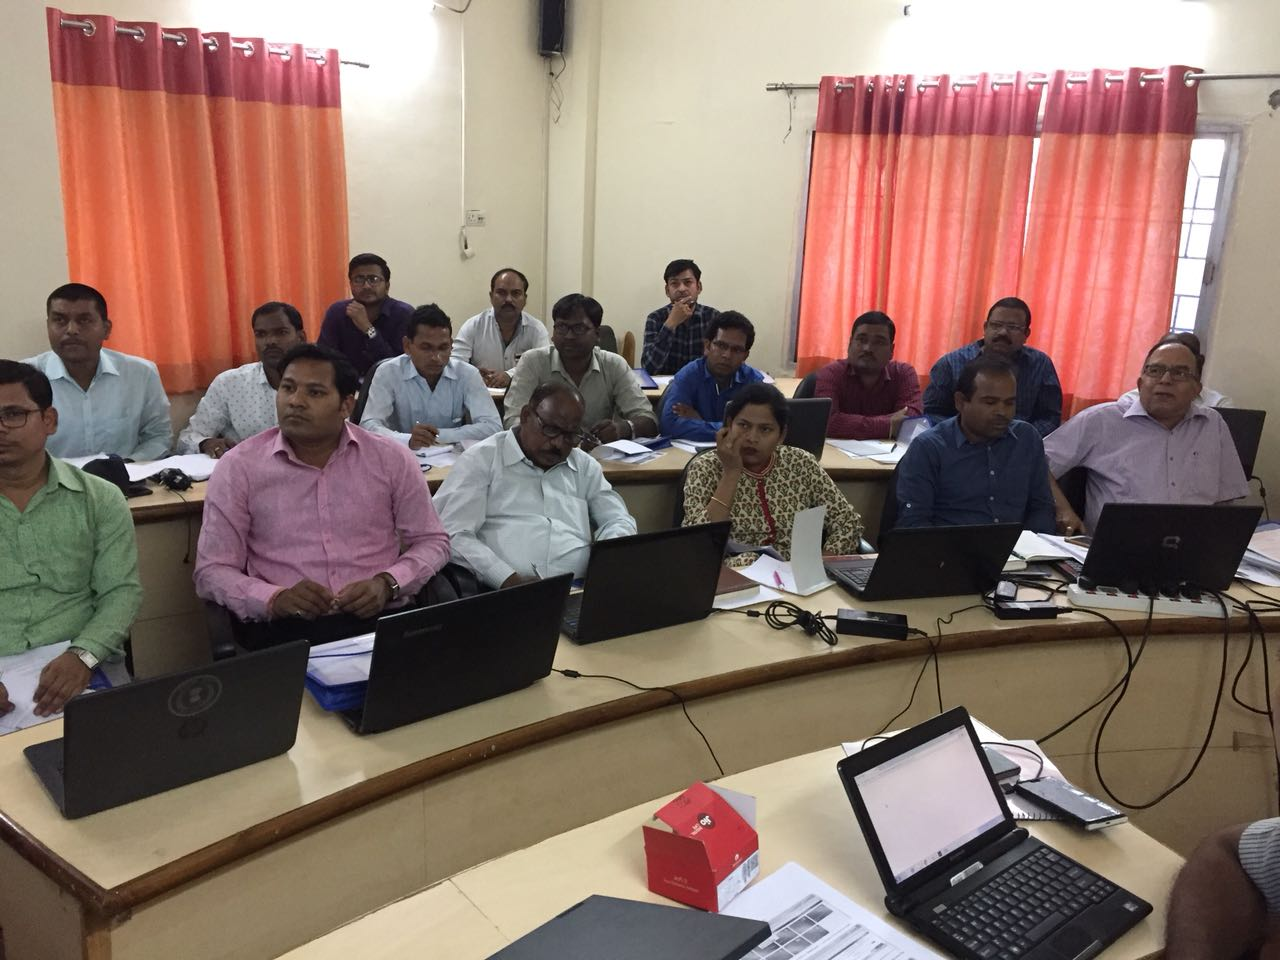 FPLMIS training successfully concludes in Raipur, Chhattisgarh.